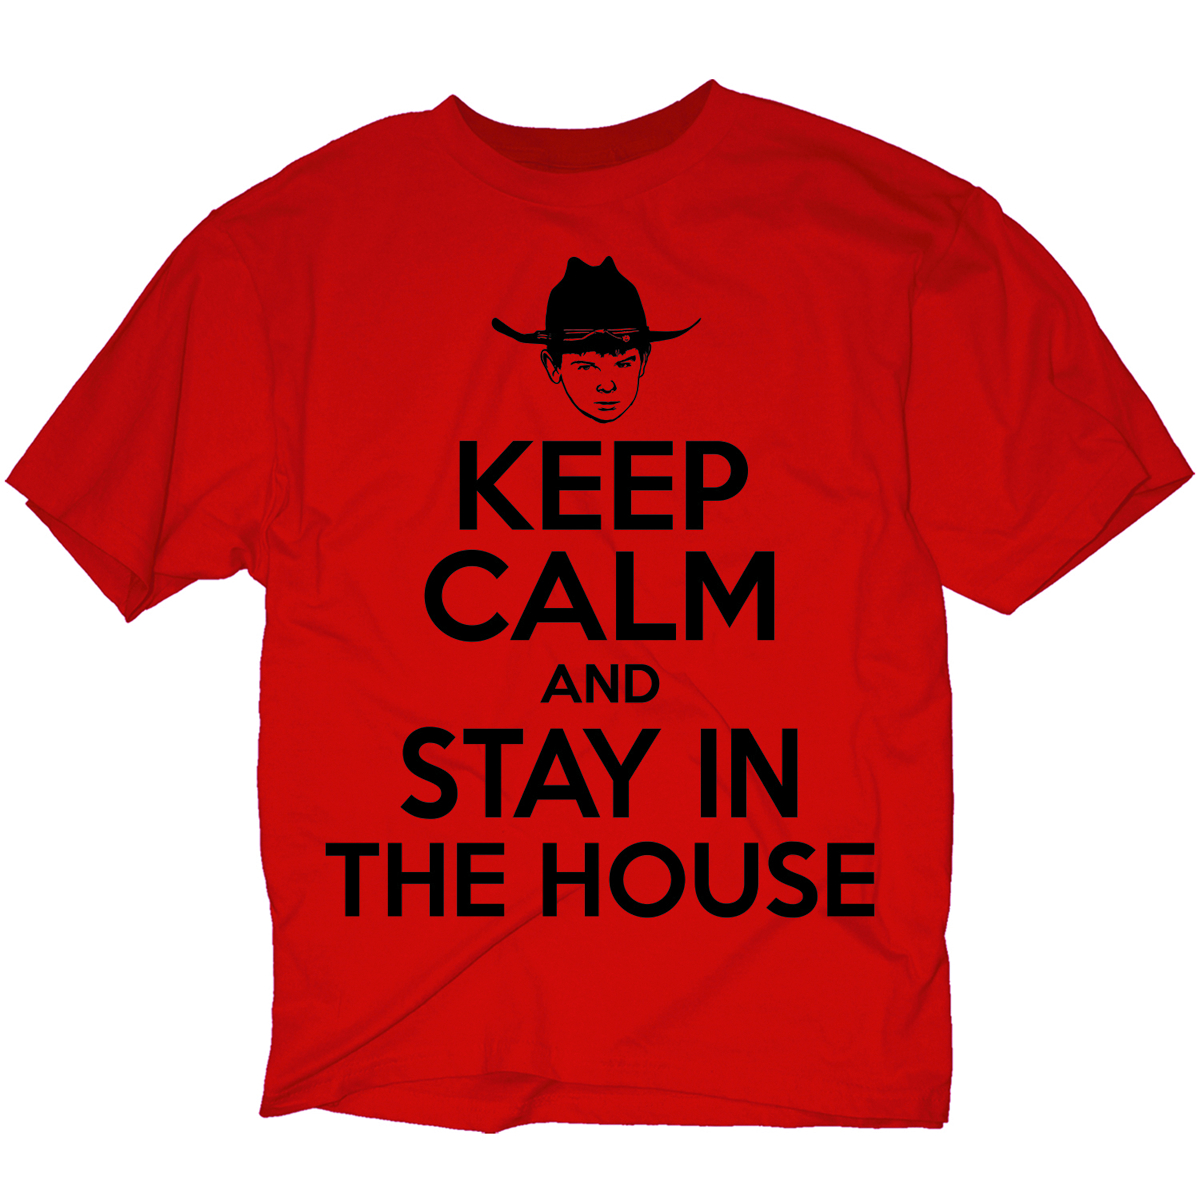 WALKING DEAD KEEP CALM STAY IN THE HOUSE PX RED T/S XL